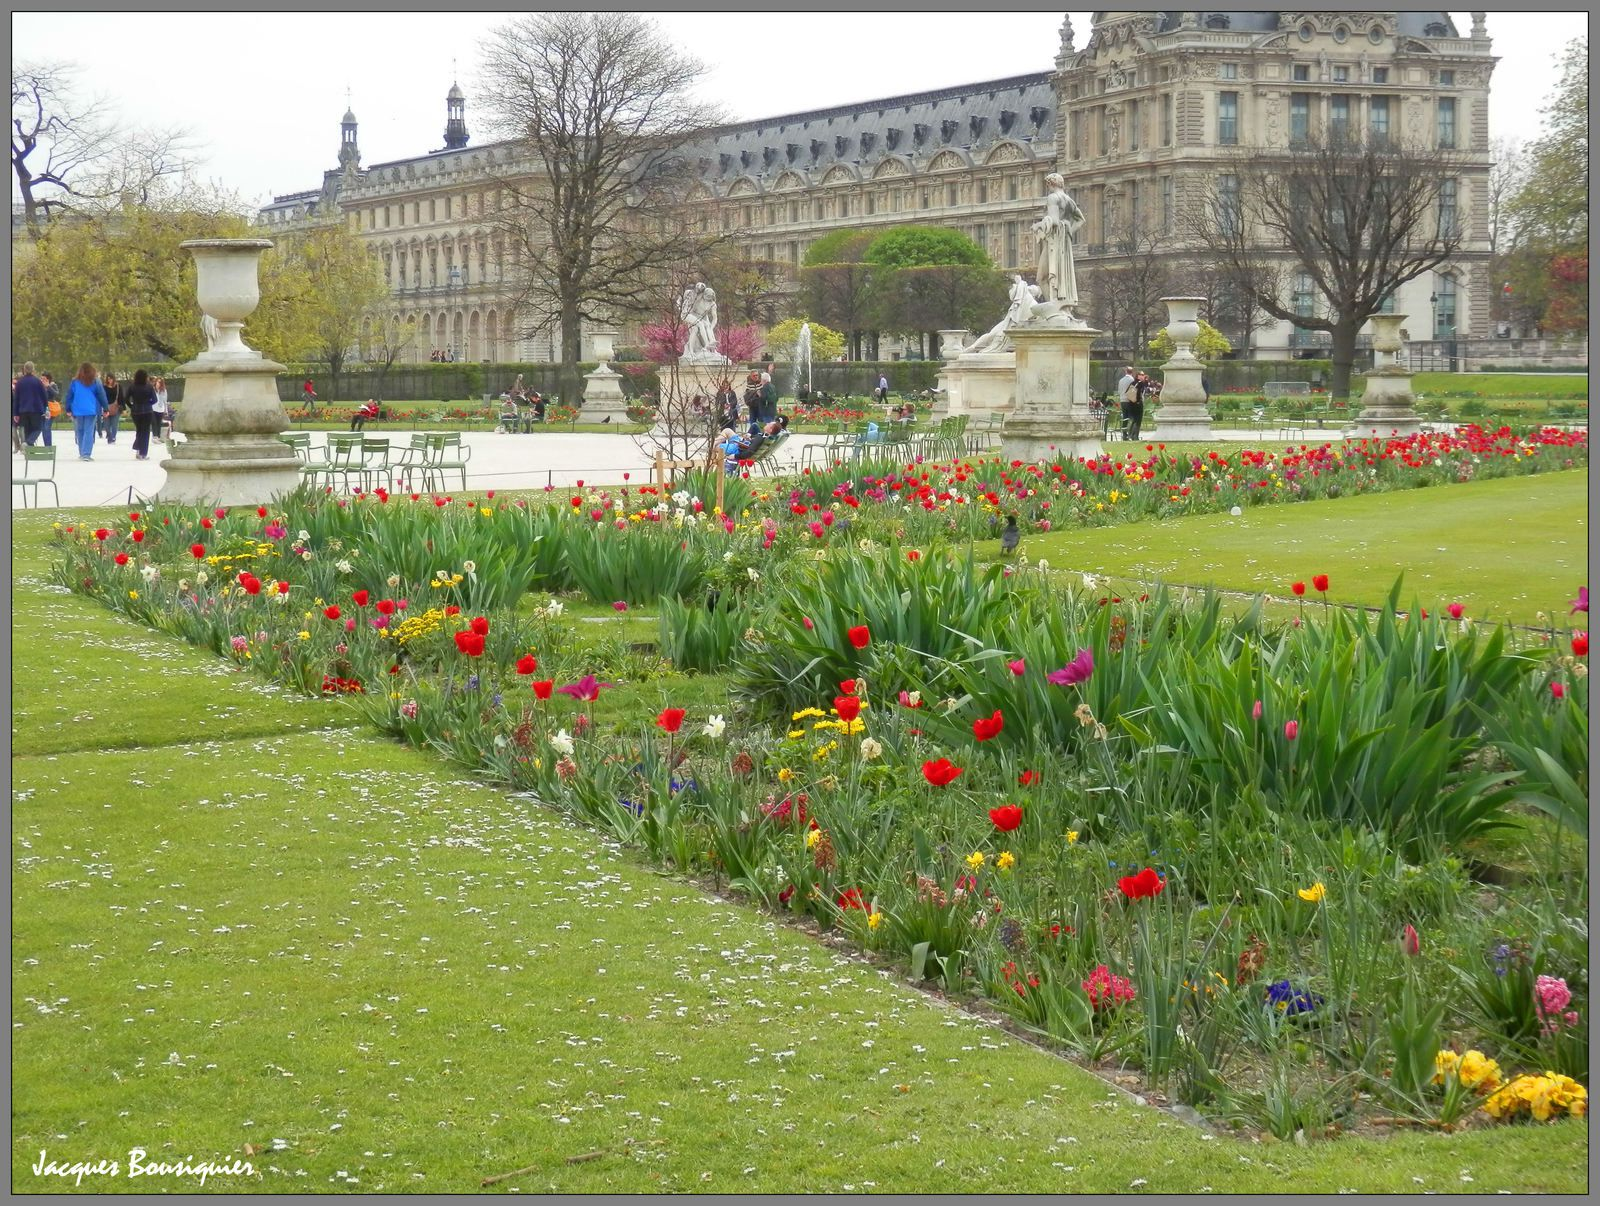 Tulipes aux Tuileries